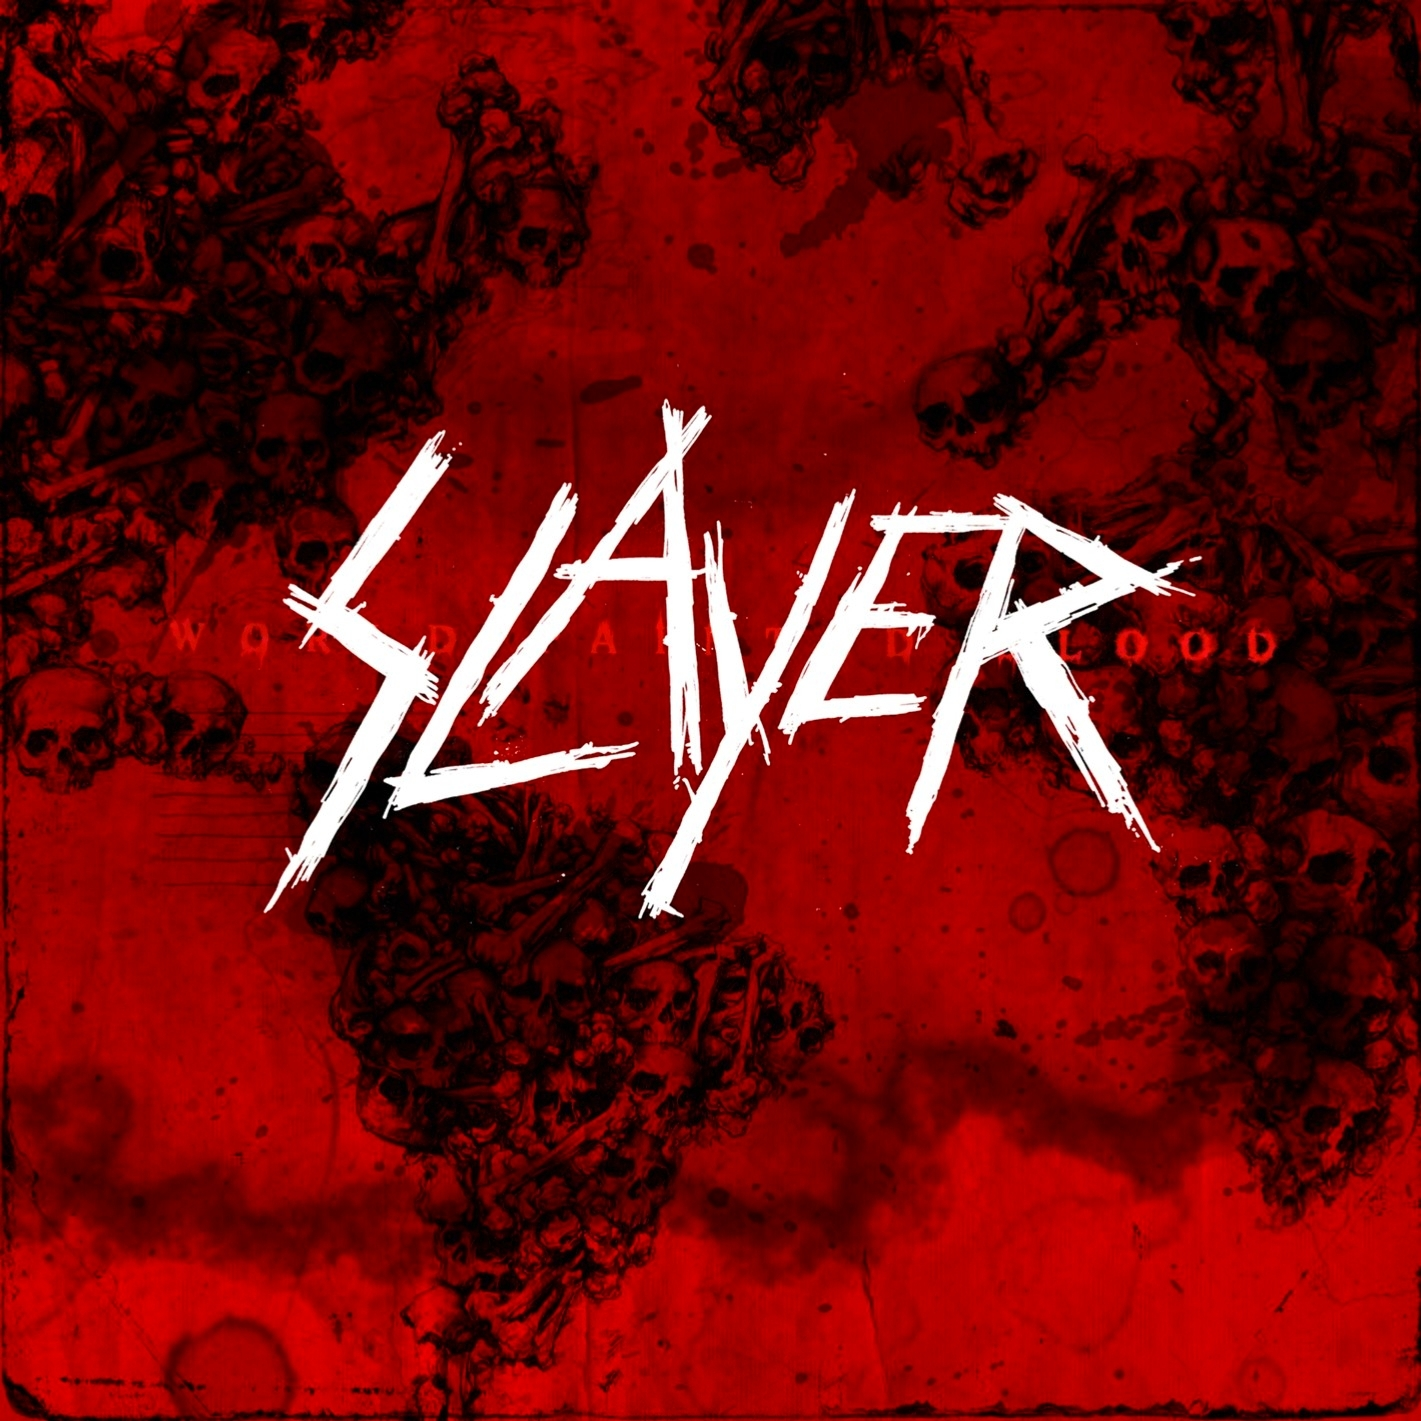 slayer album covers HD Wallpaper